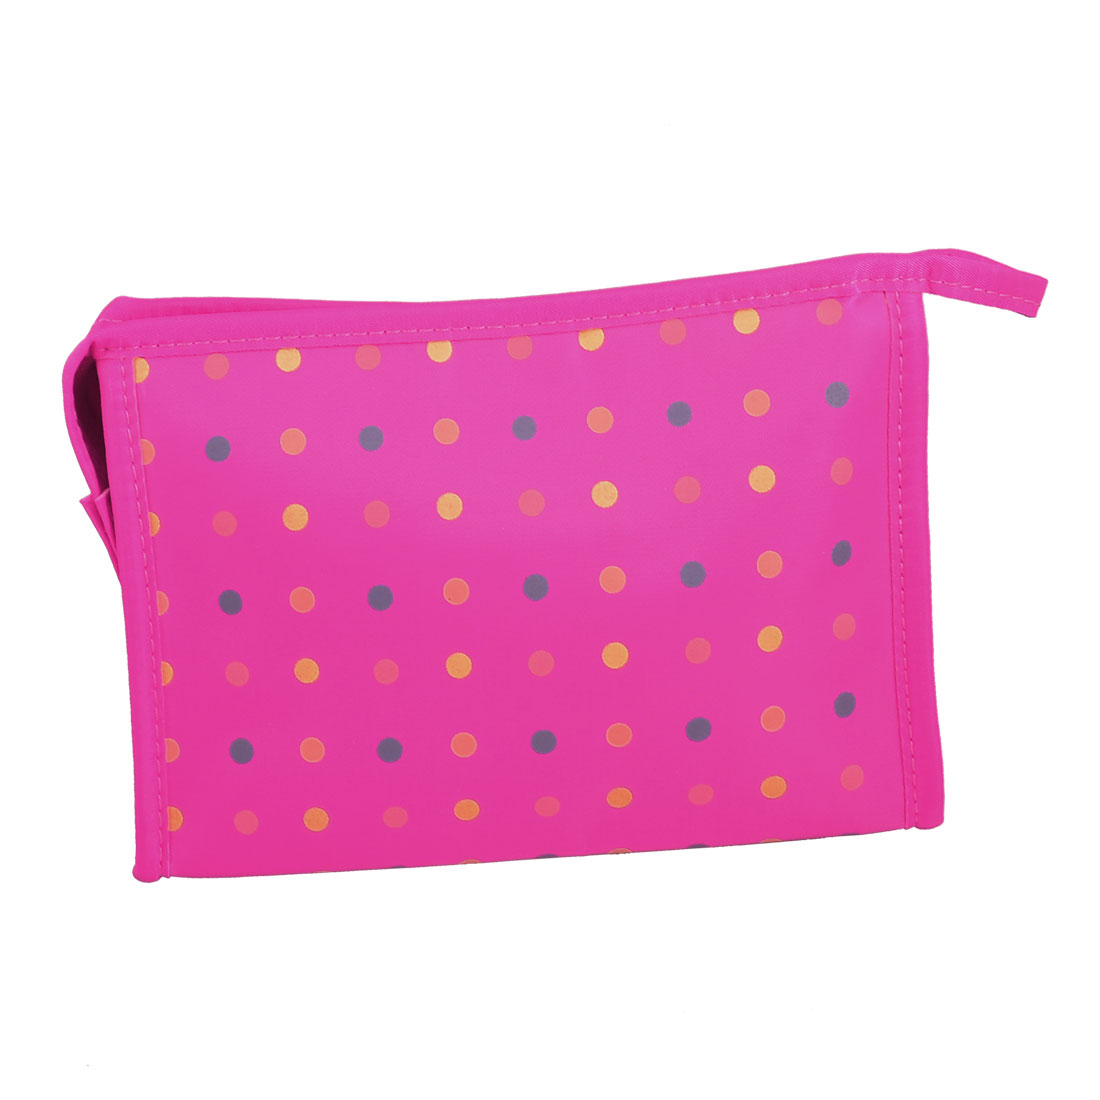 Multicolor Polka Dot Zip up Mirror Cosmetic Bag Pouch Purse Fuchsia